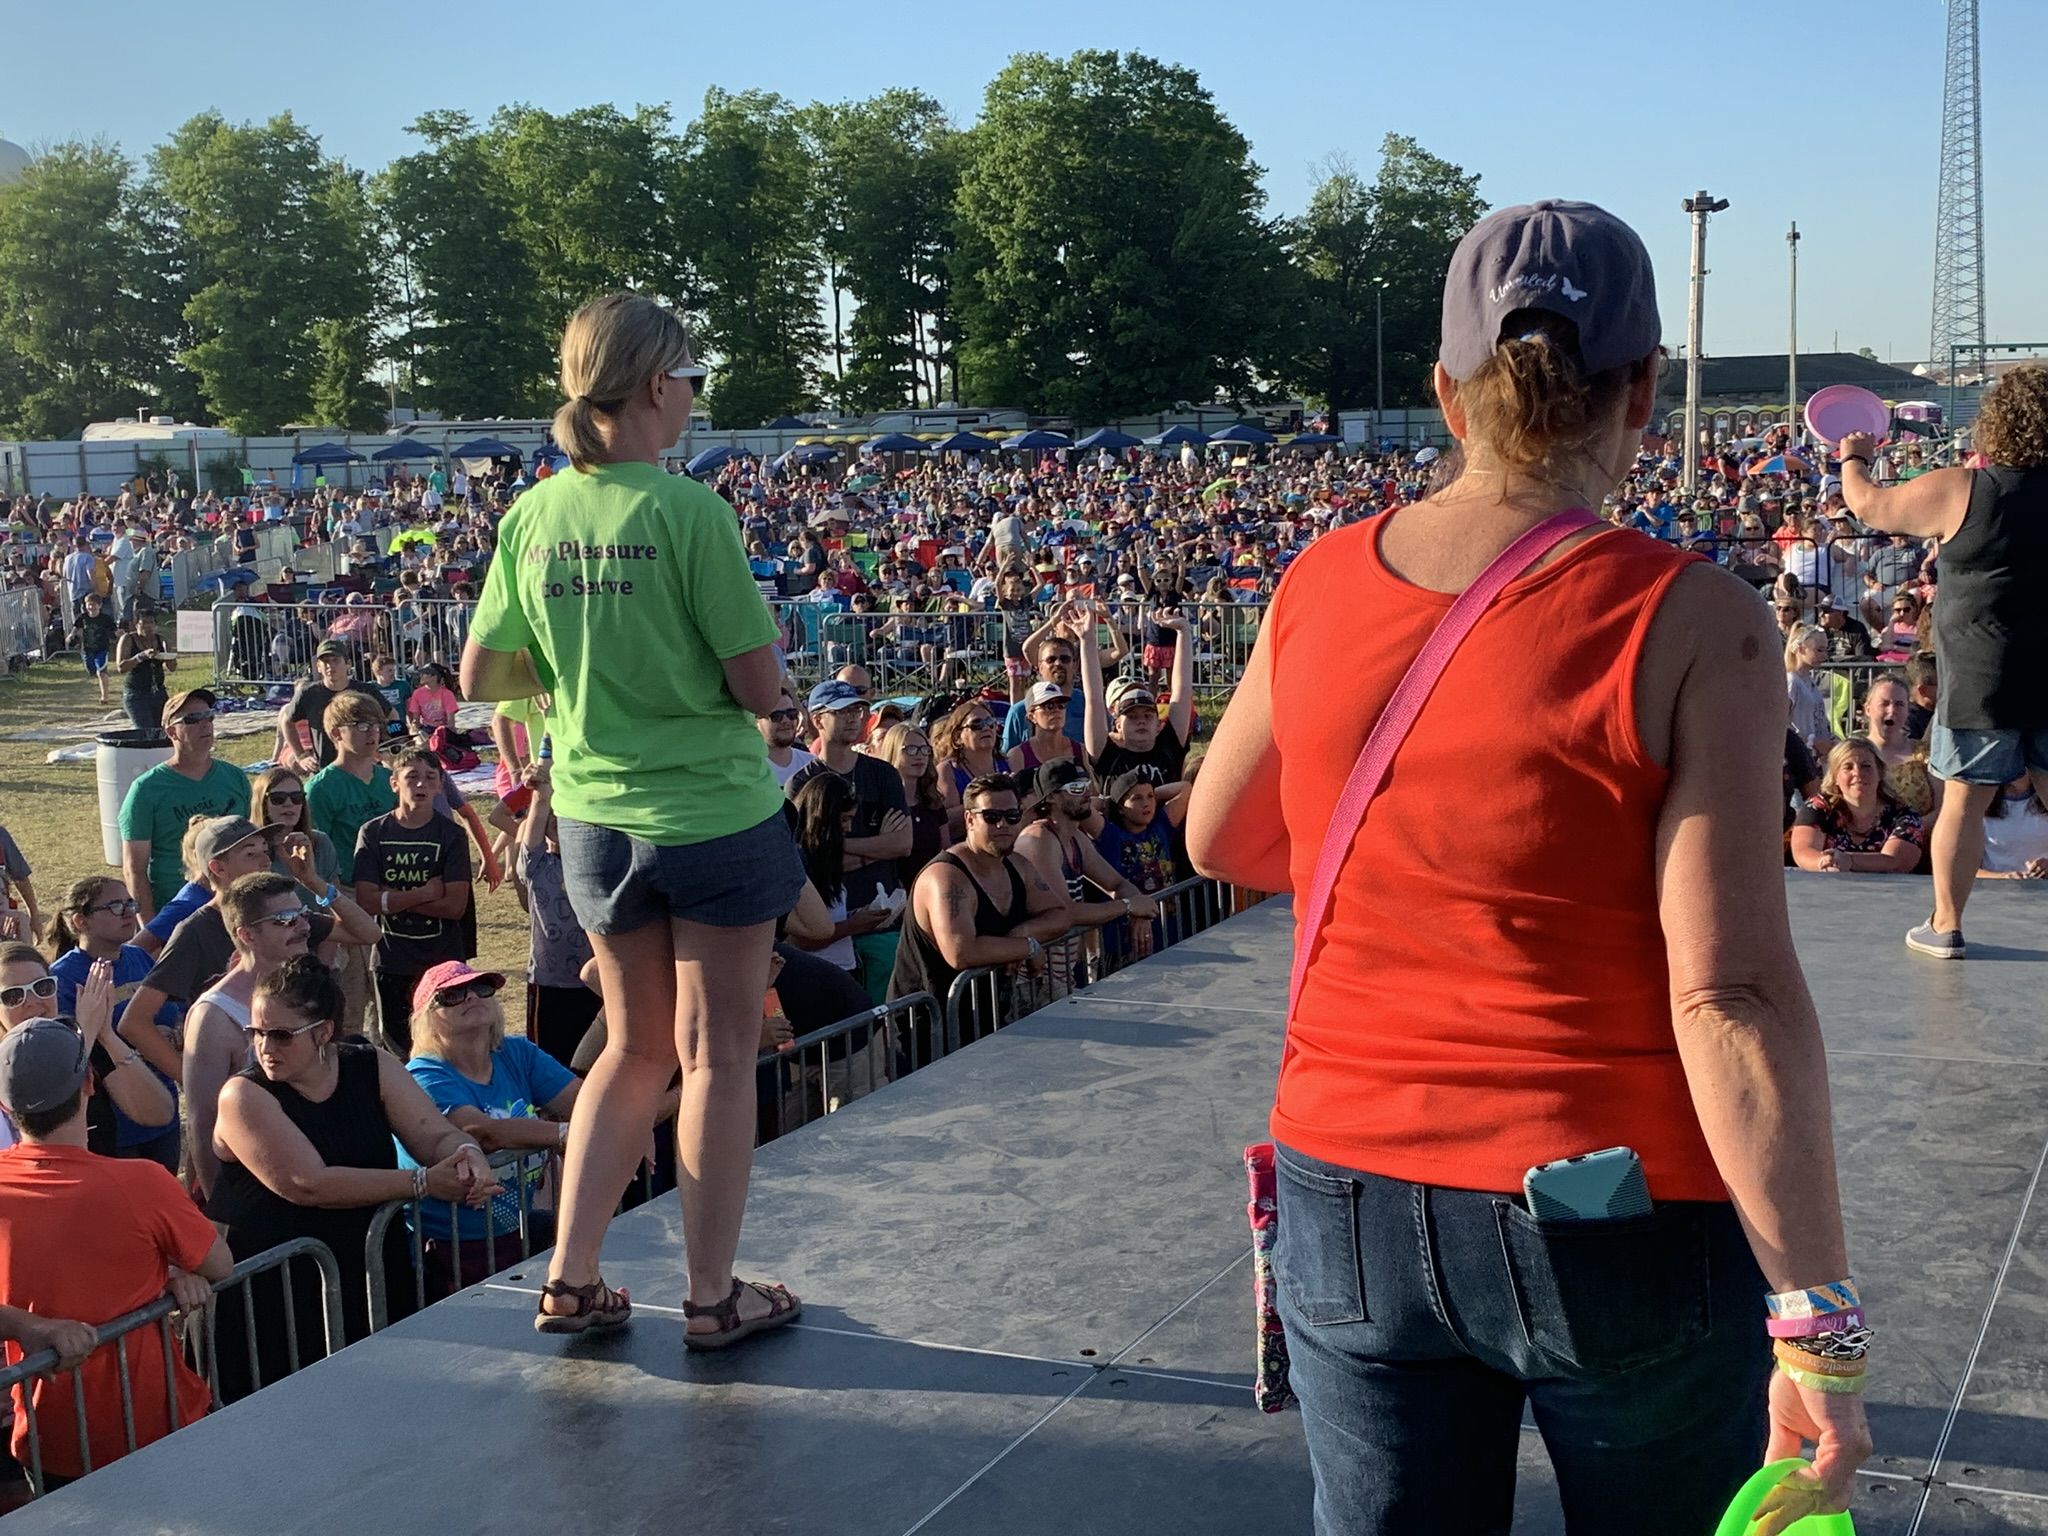 Sharing Opportunities to ConnectDuring the festival, videos ran on the big screens letting attendees know how they can connect with Unveiled Ministries. And some lucky event-goers received a butterfly Frisbee! -